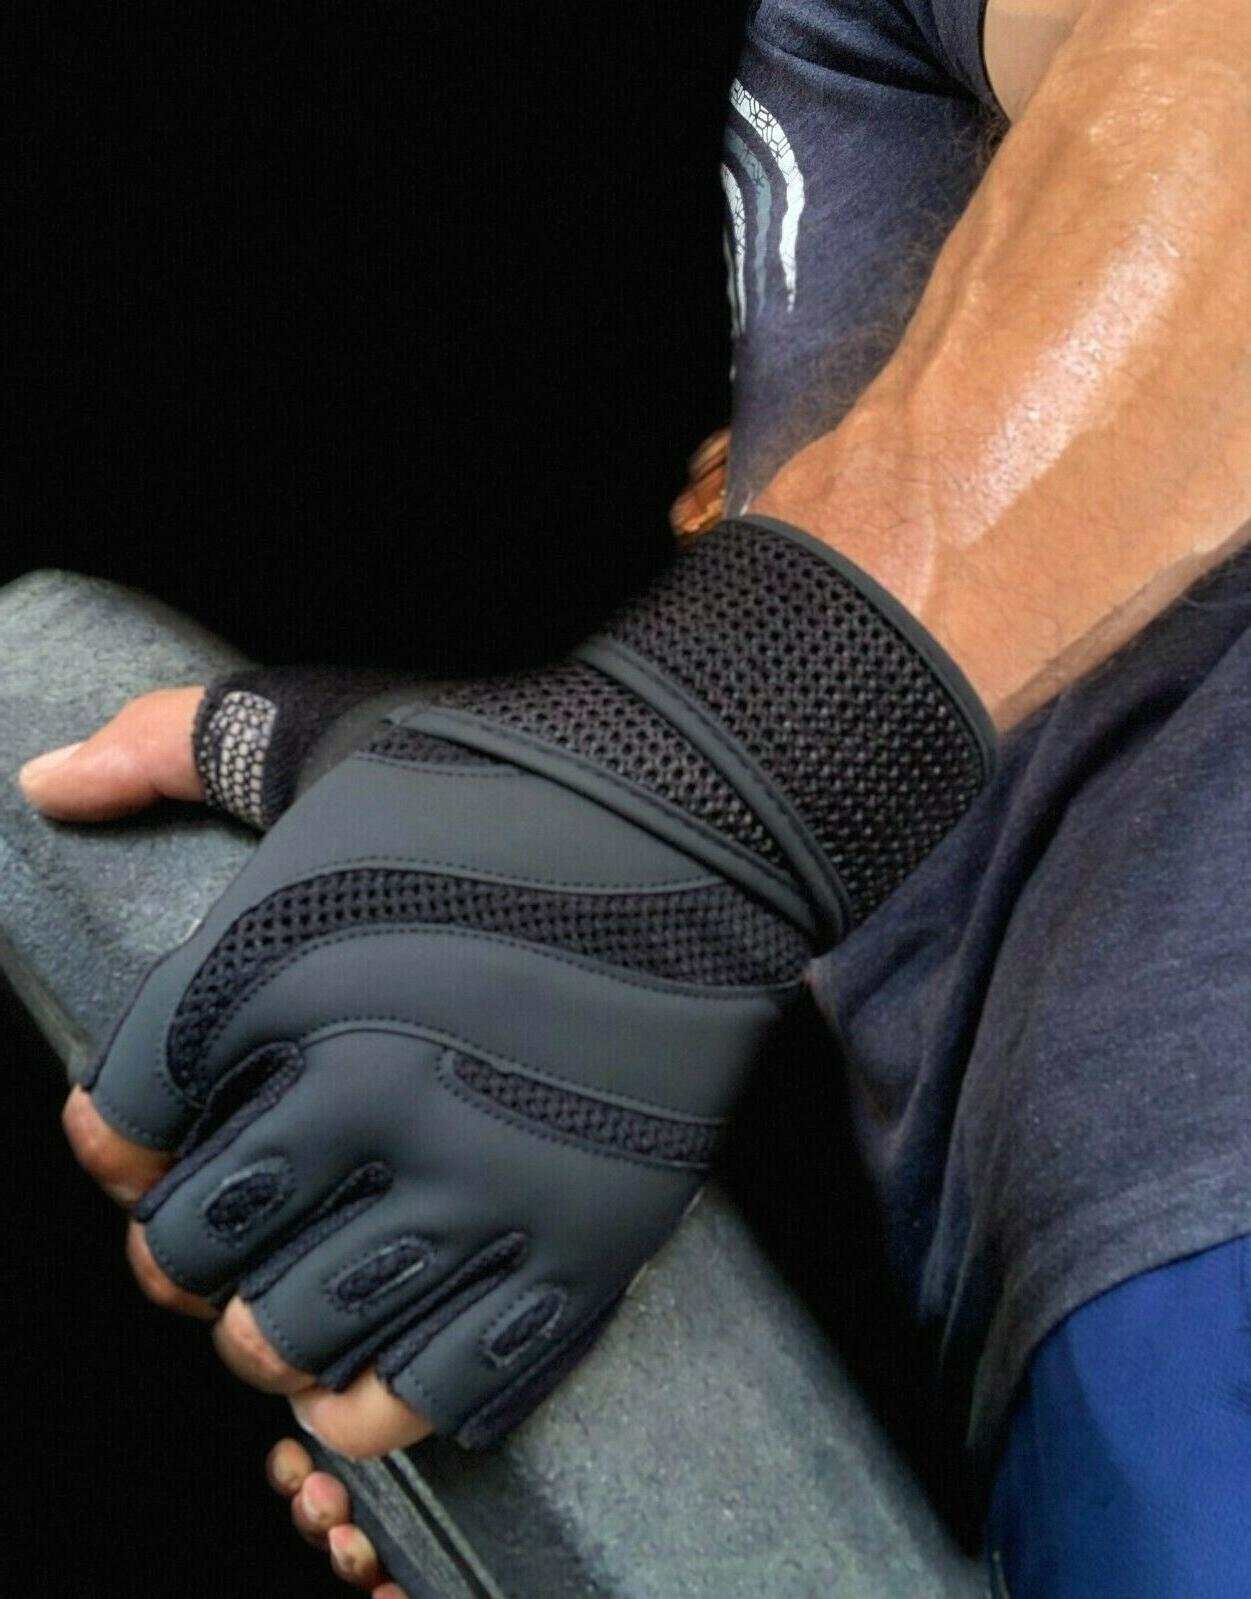 heavy duty gym gloves for crossfit weight